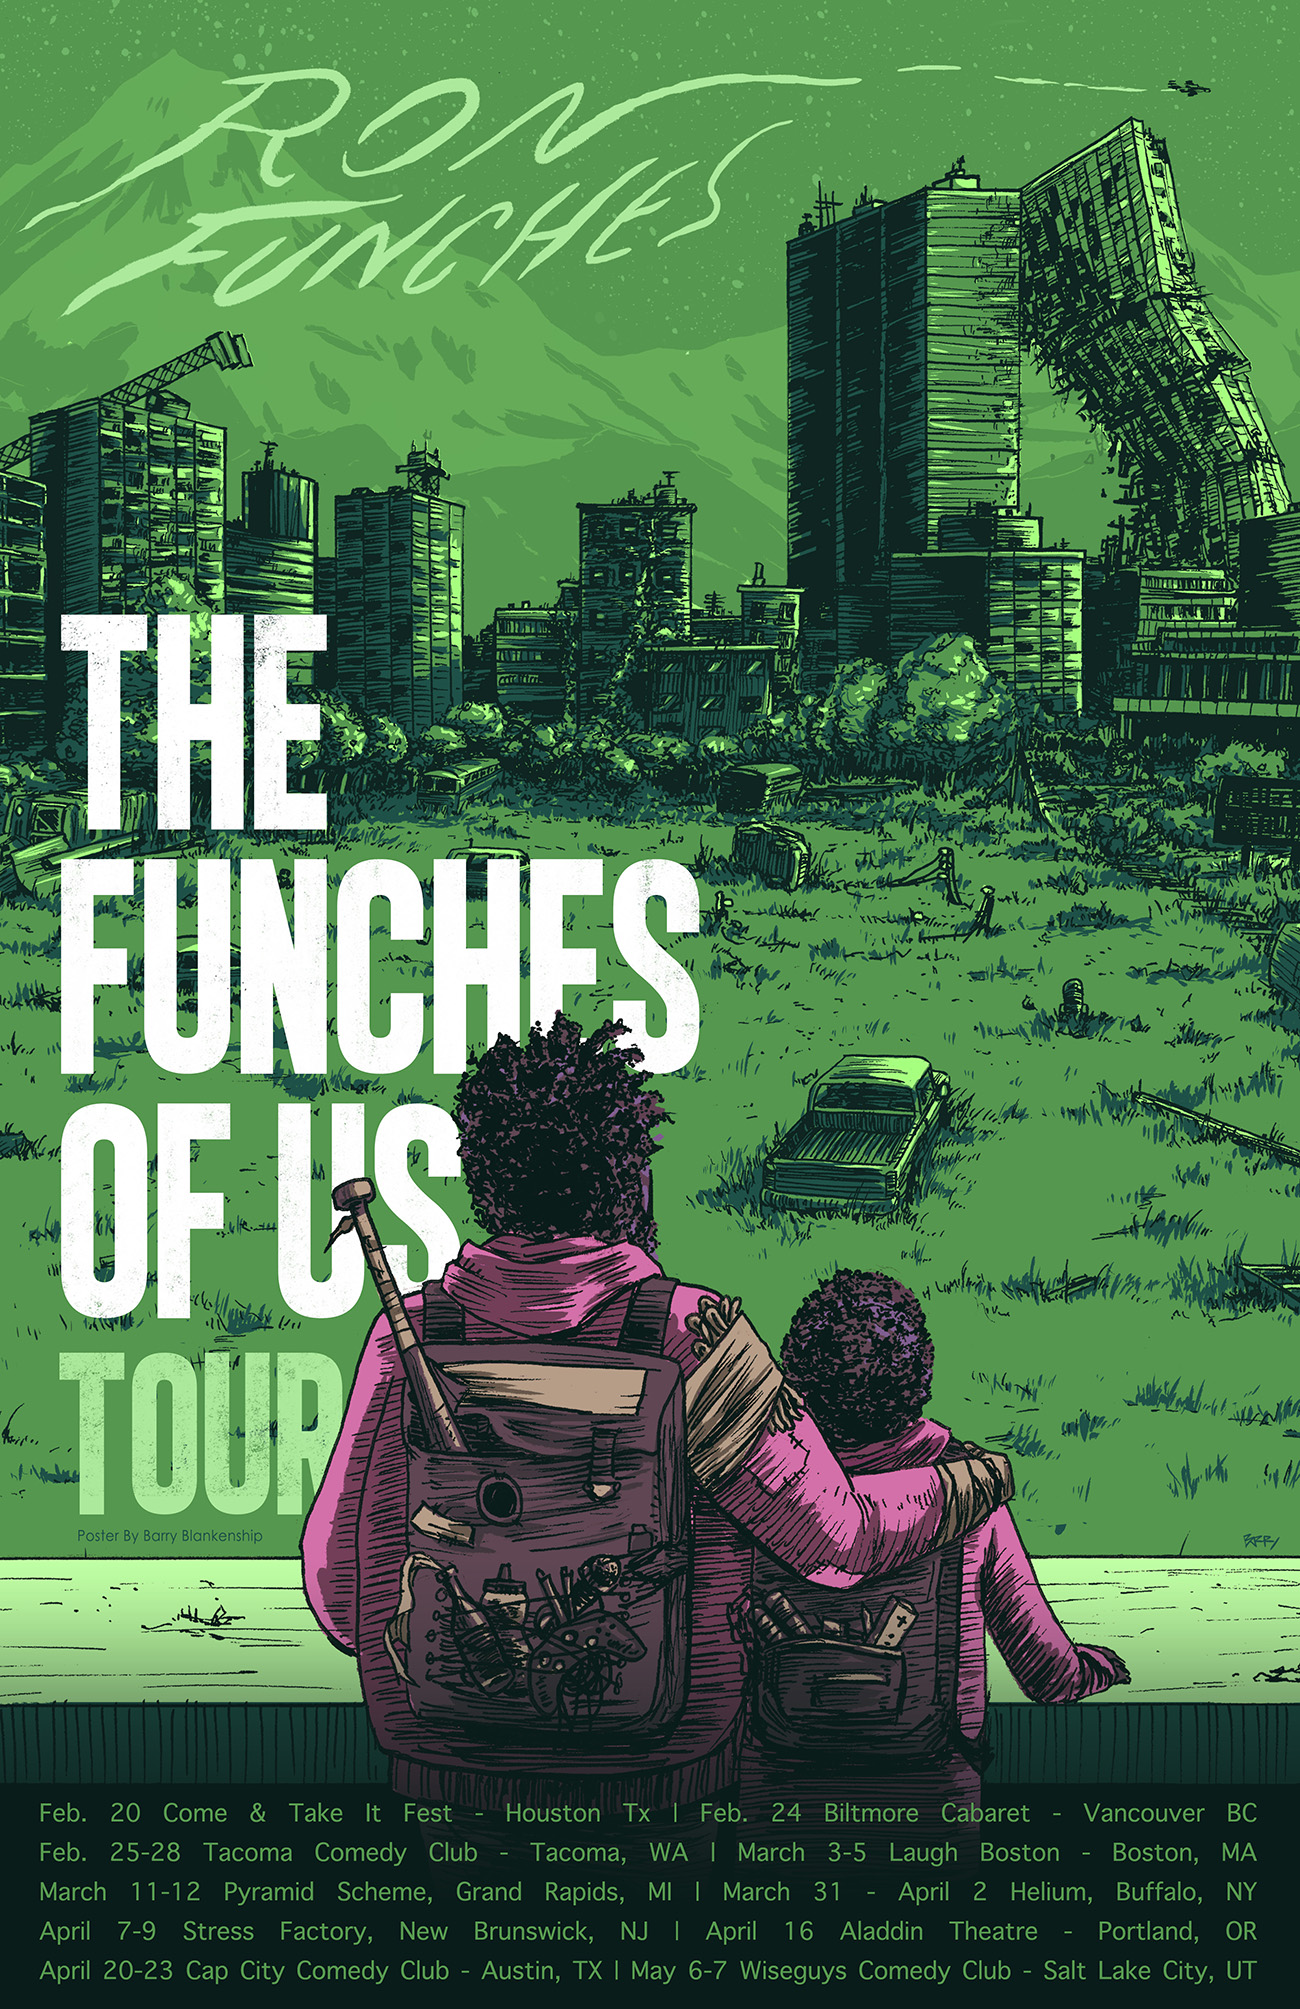 funches_of_us_tour.jpg